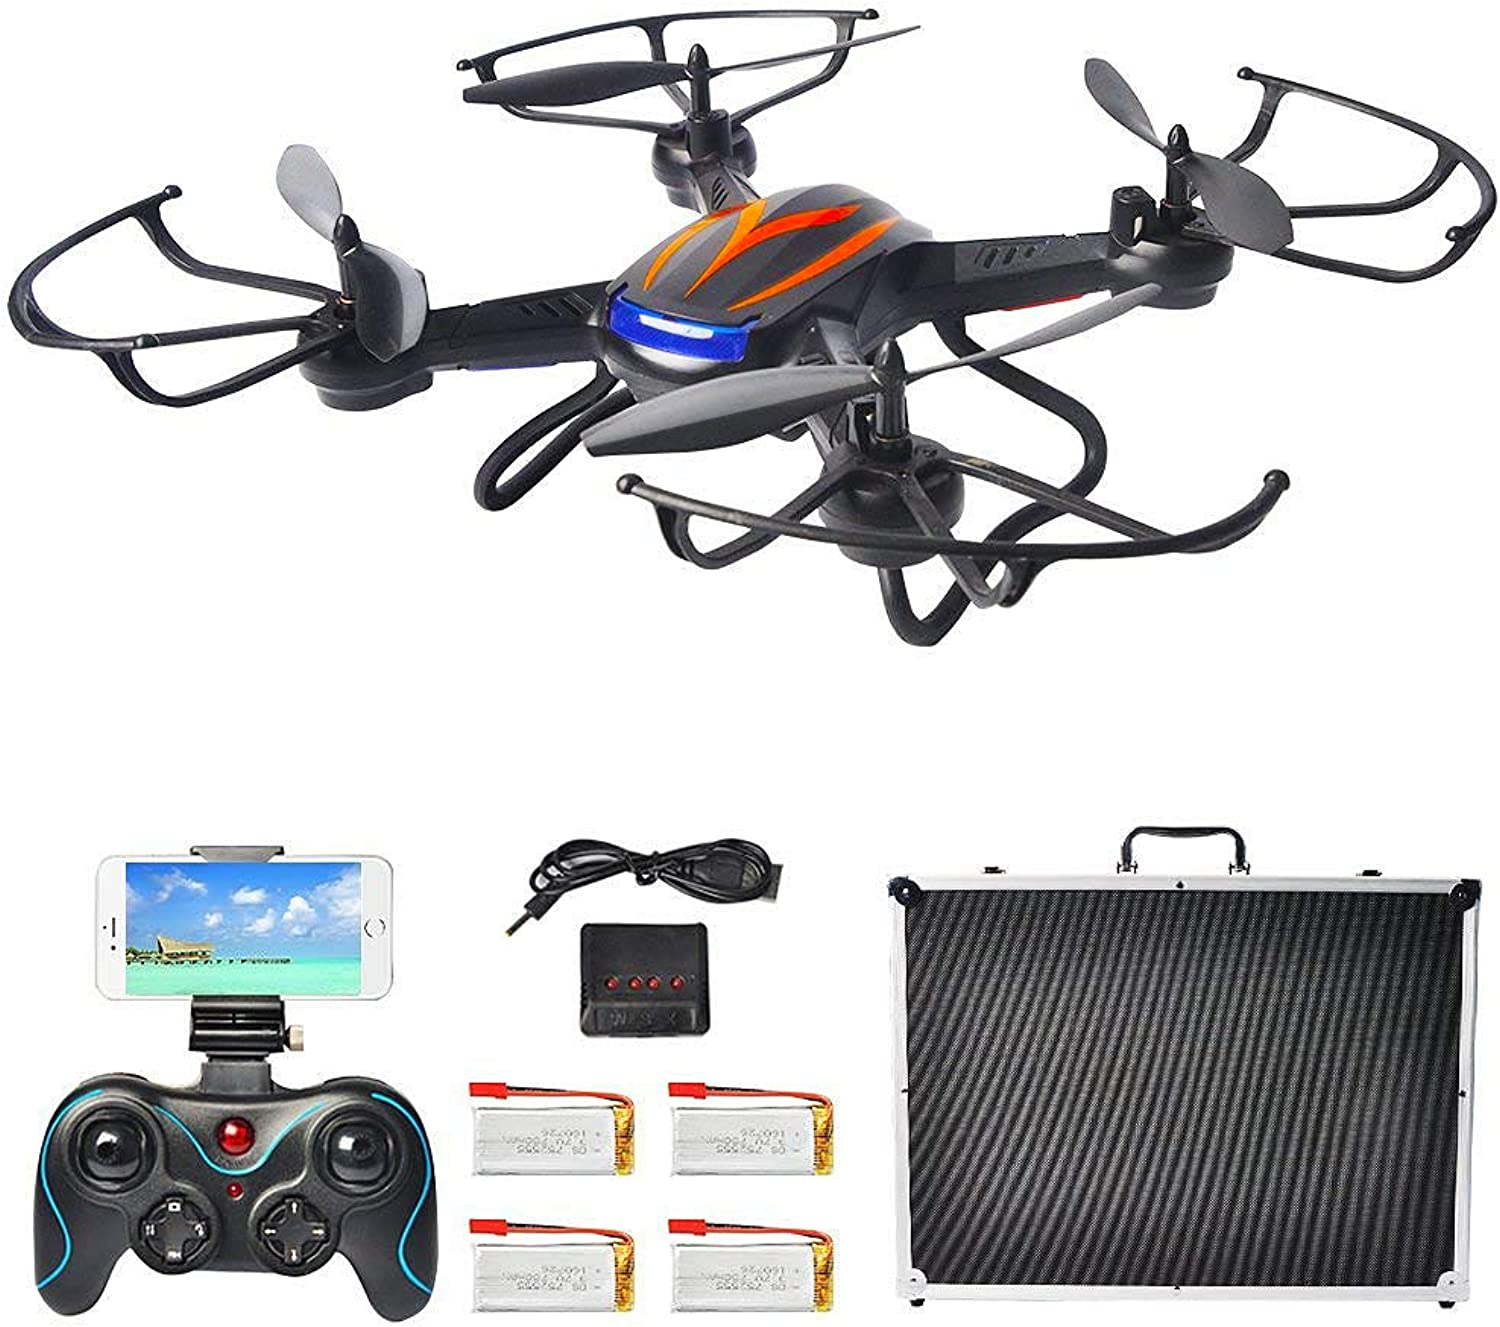 F181W WiFi FPV Drone with 4 Battery and Portable Carrying Case, RC Quadcopter with 720P Camera Live Video Altitude Hold One Key Return Function for Beginners and Kids (Value Pack Black)